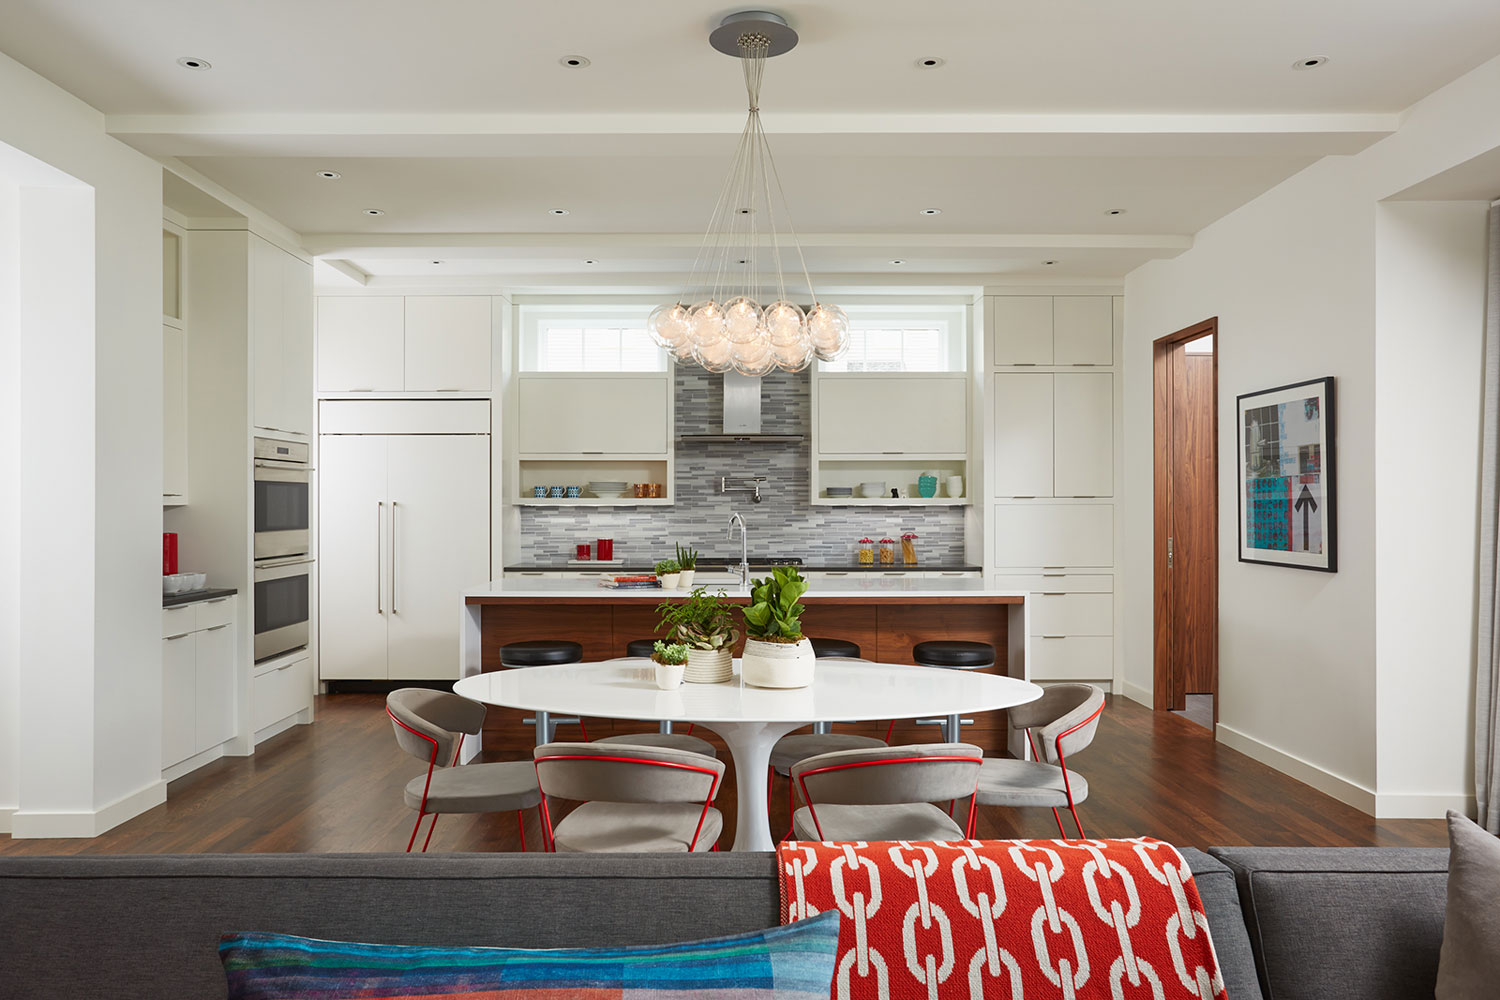 lucy interior design - Interior Designers In Minneapolis